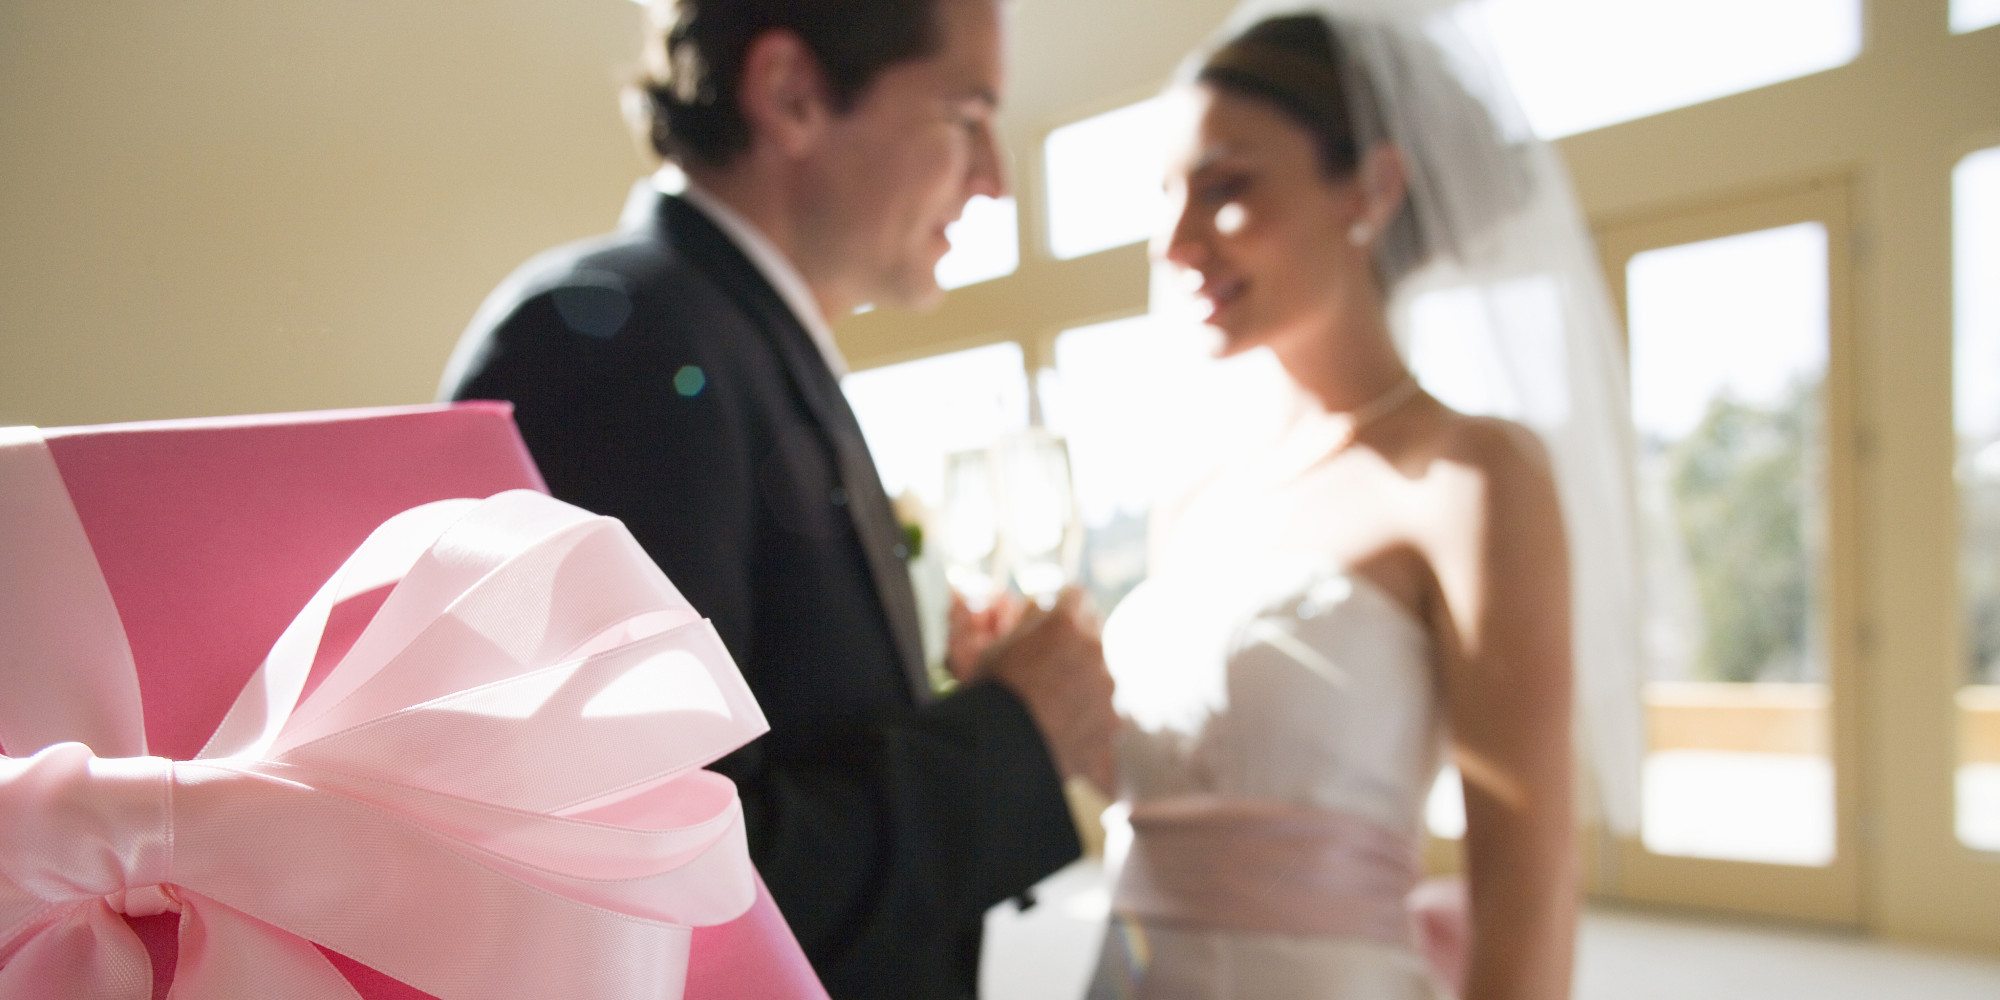 how much should you spend on a wedding gift? | huffpost